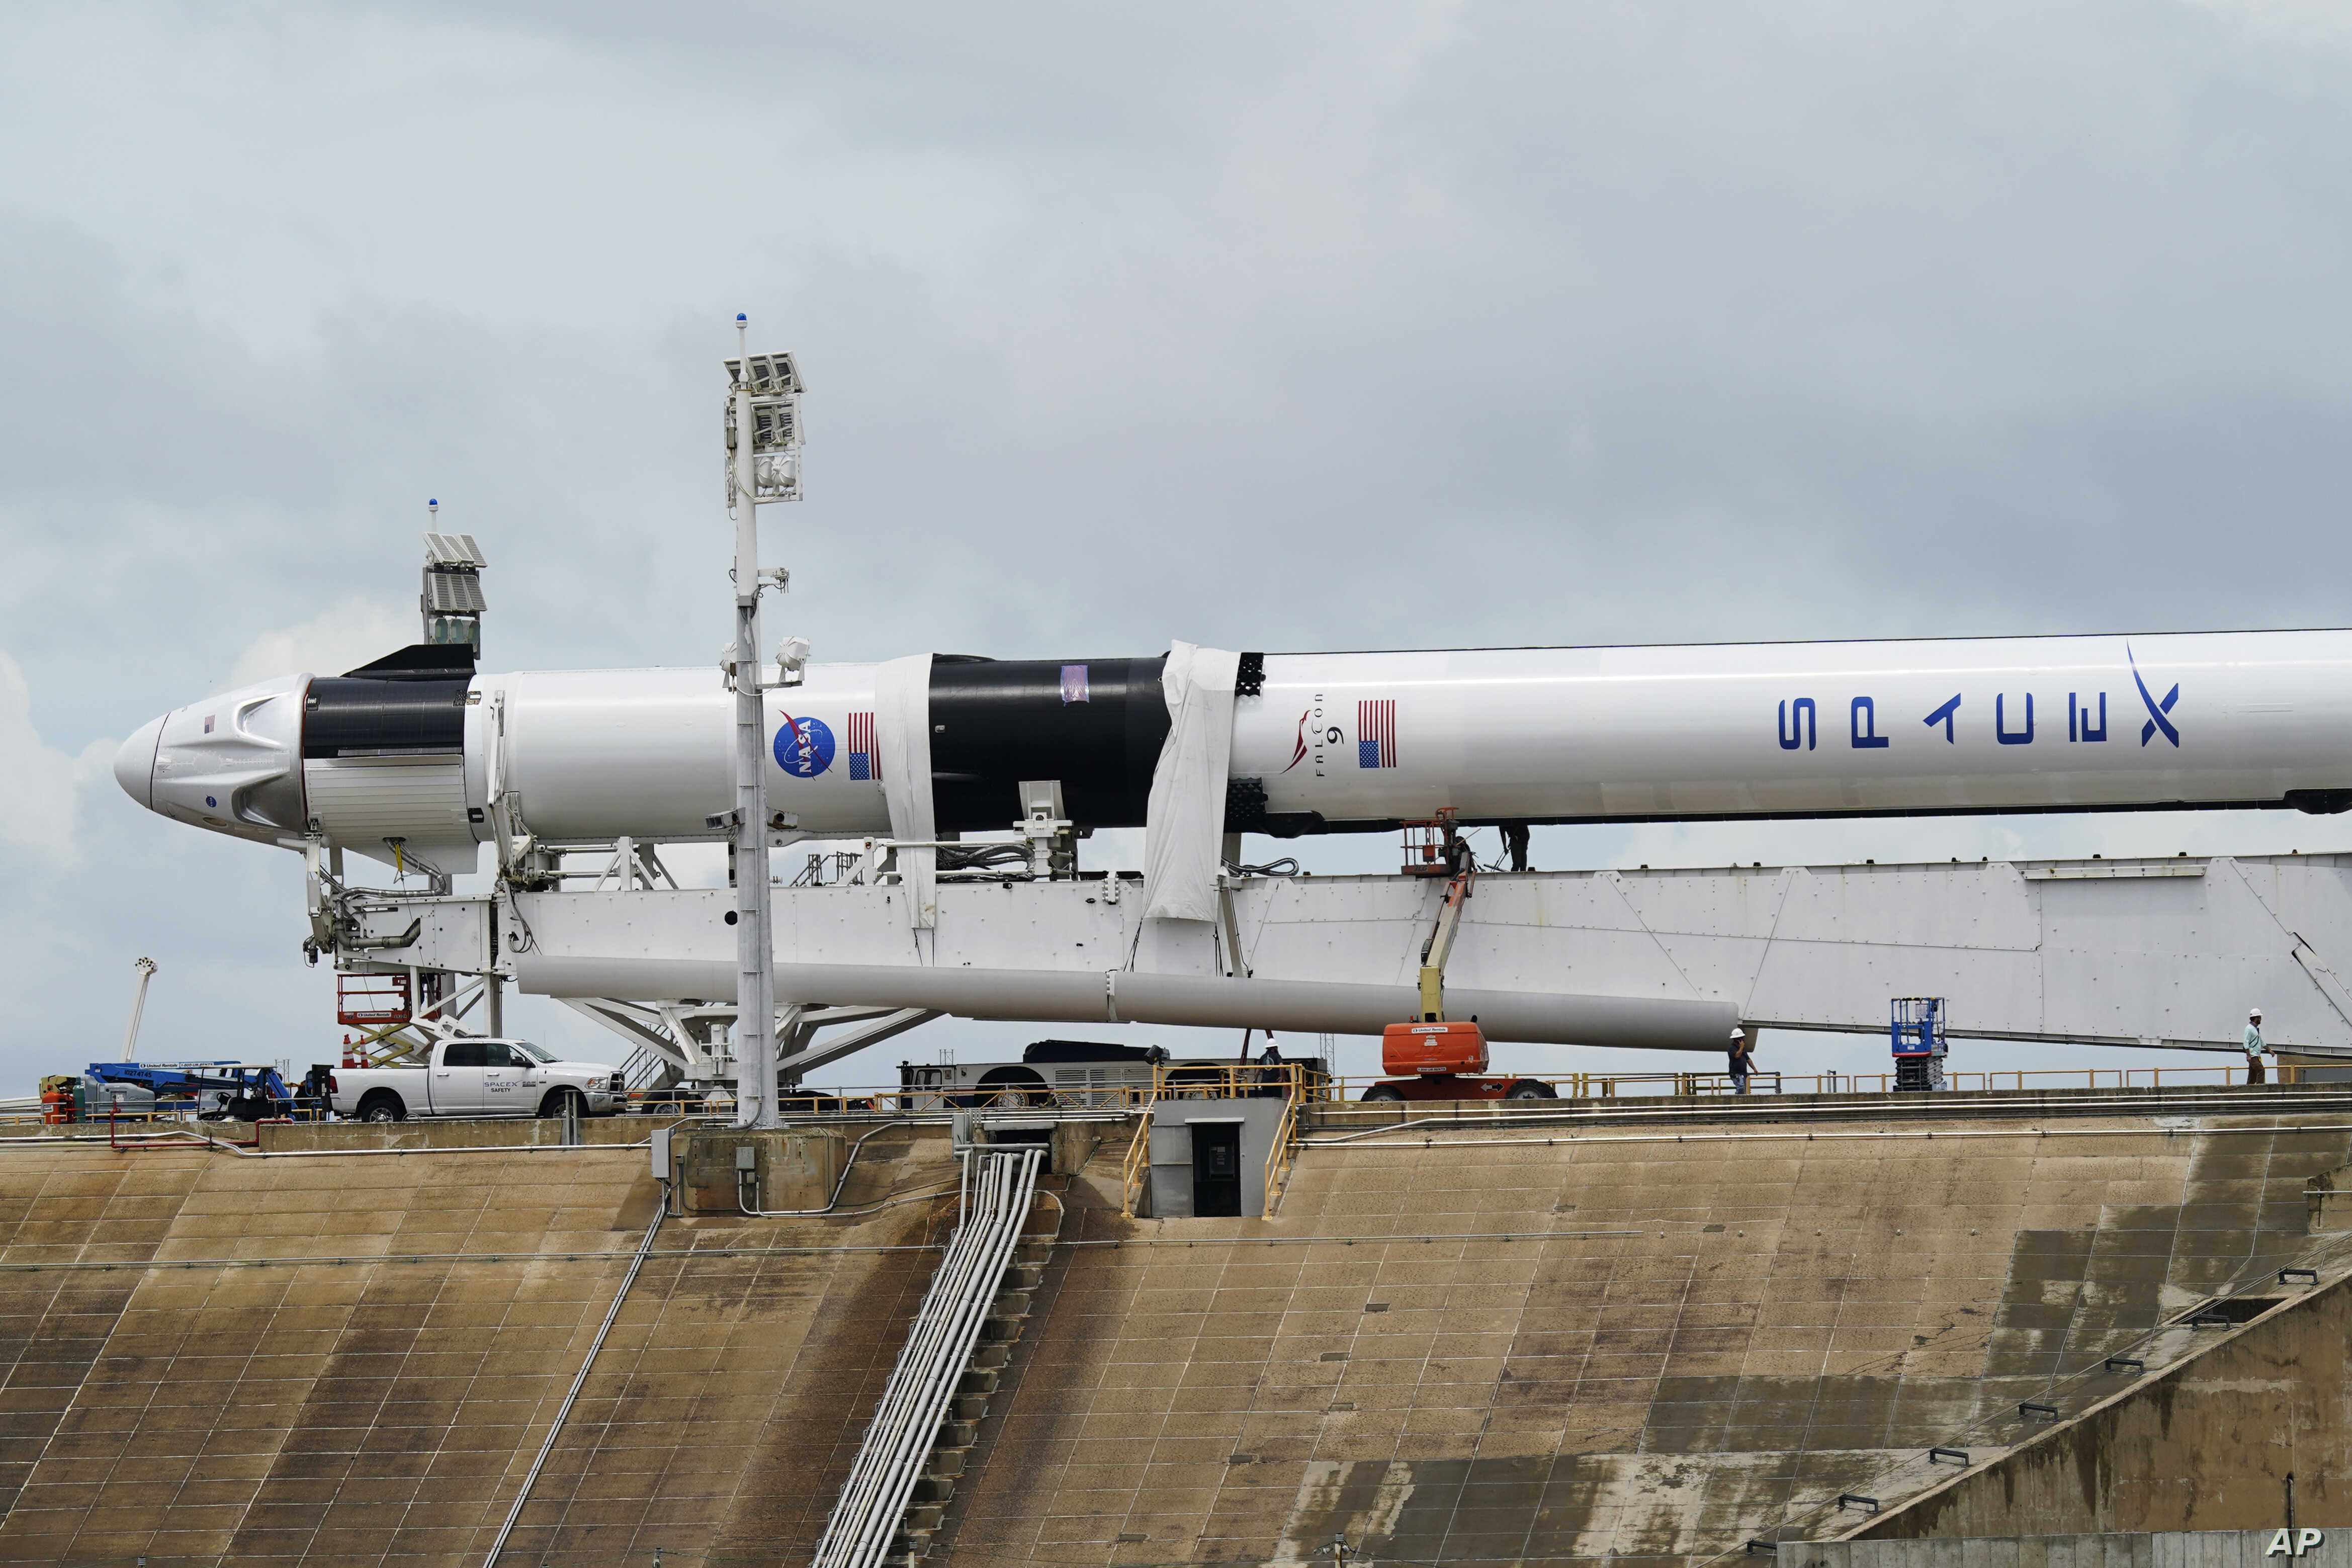 SpaceX's first astronaut launch threatened by stormy weather